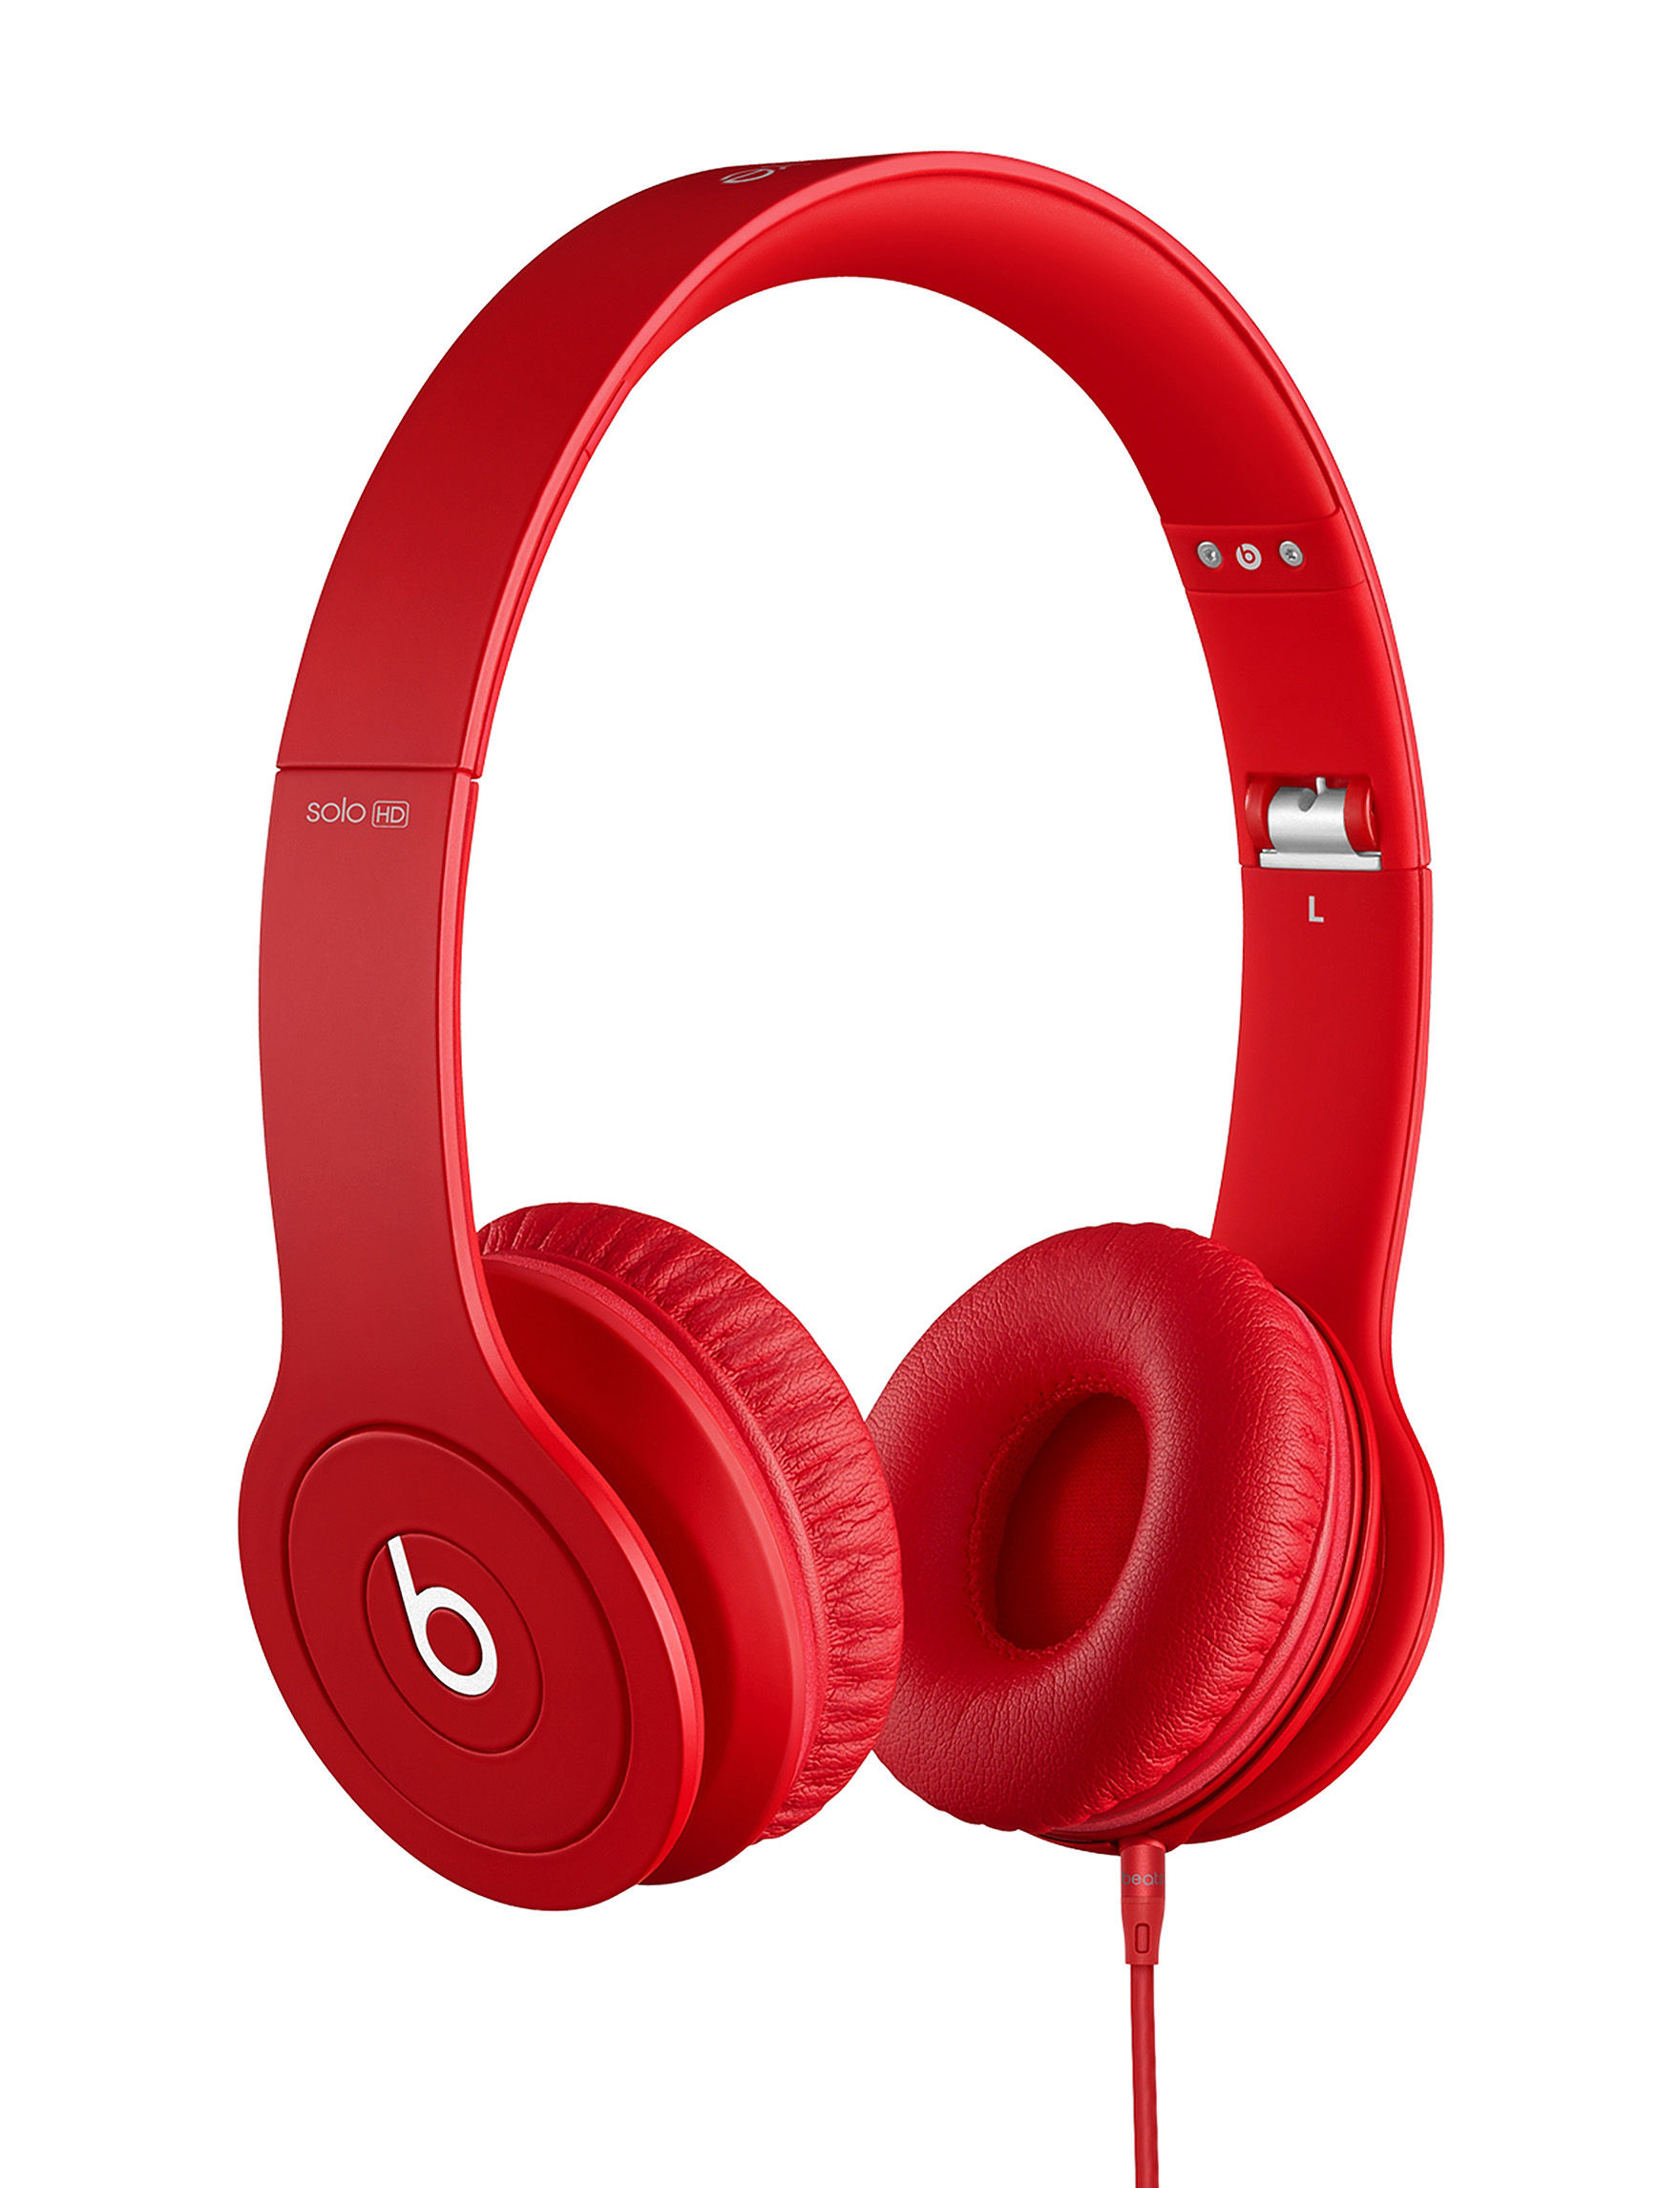 Beats By Dre Drenched Headphones - White - Beats by Dre